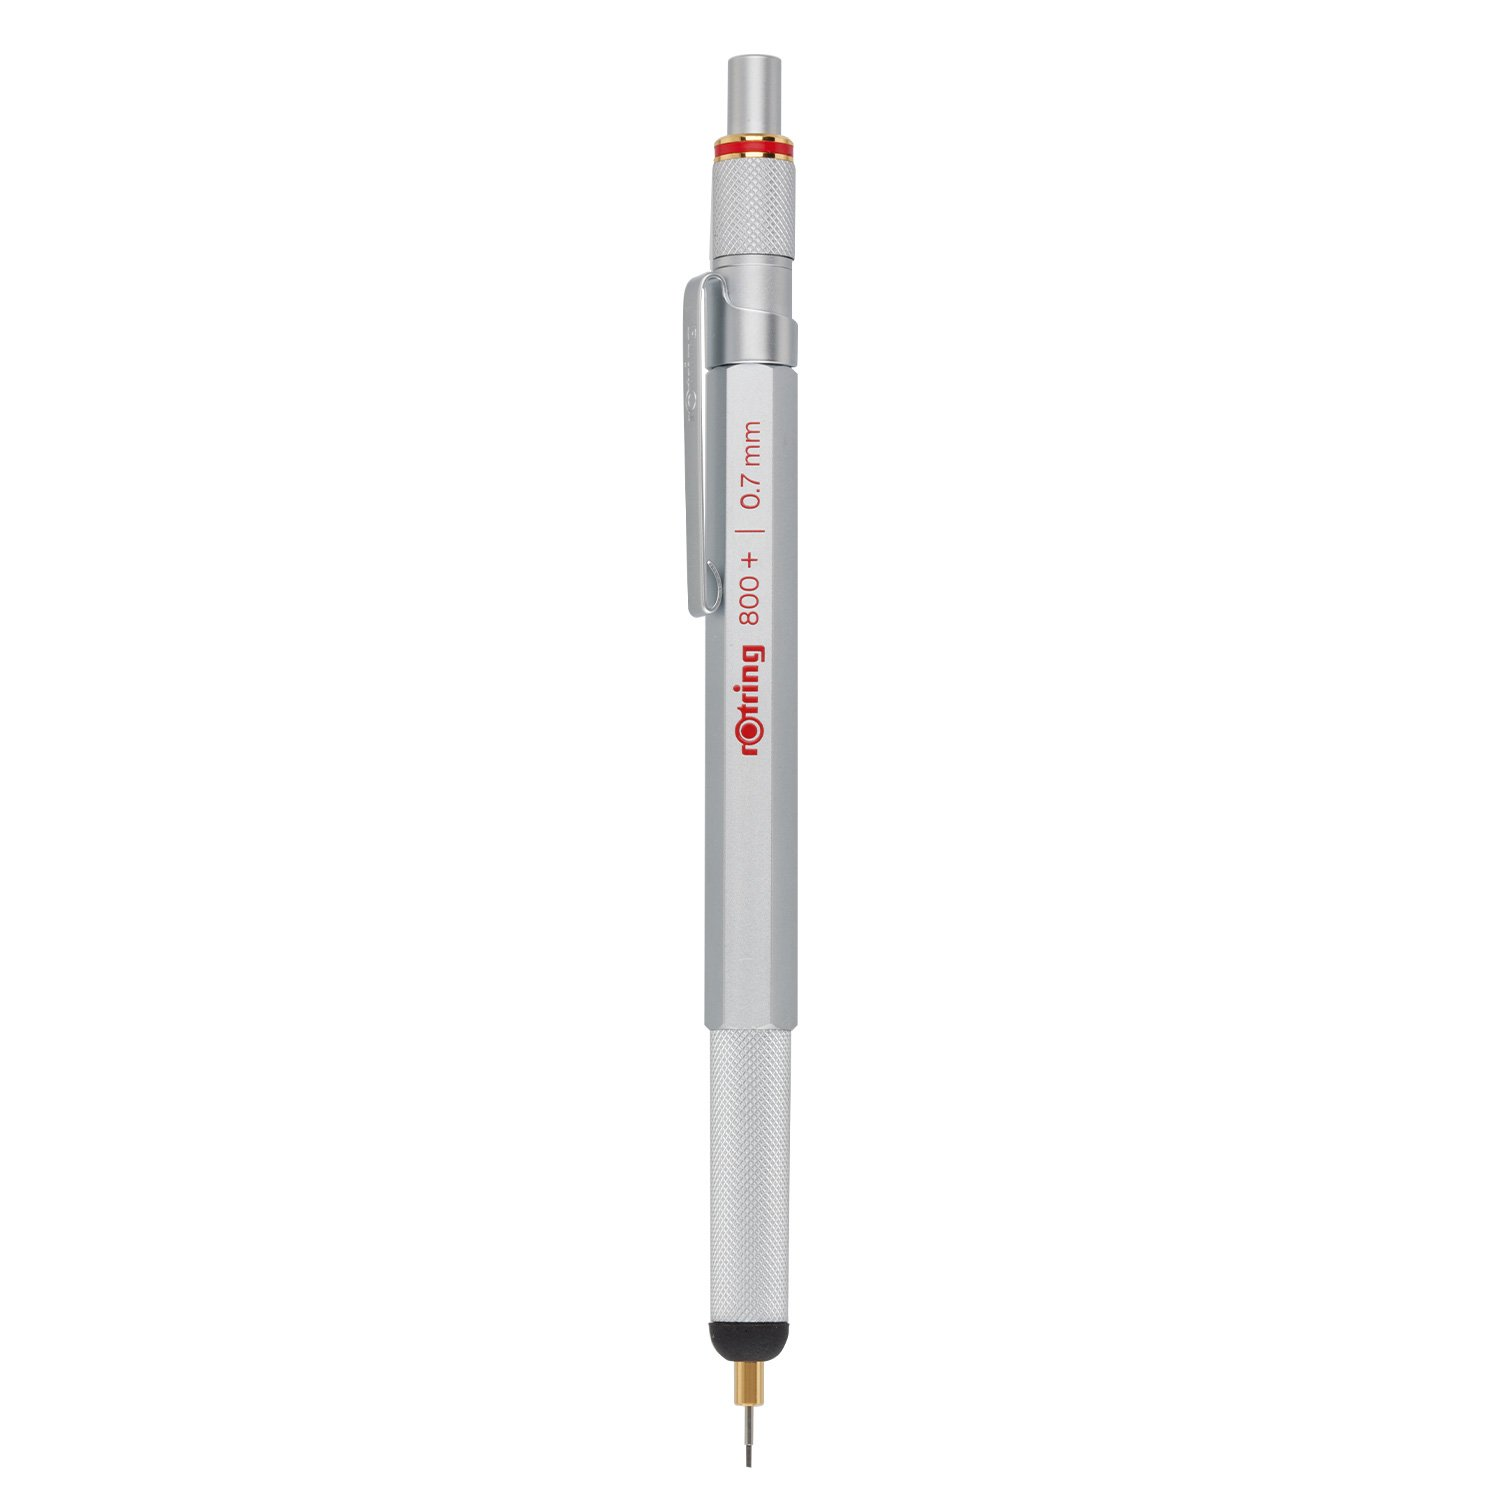 rOtring 1900184 800+ Mechanical Pencil and Touchscreen Stylus, 0.7 mm, Silver Barrel by Rotring (Image #3)